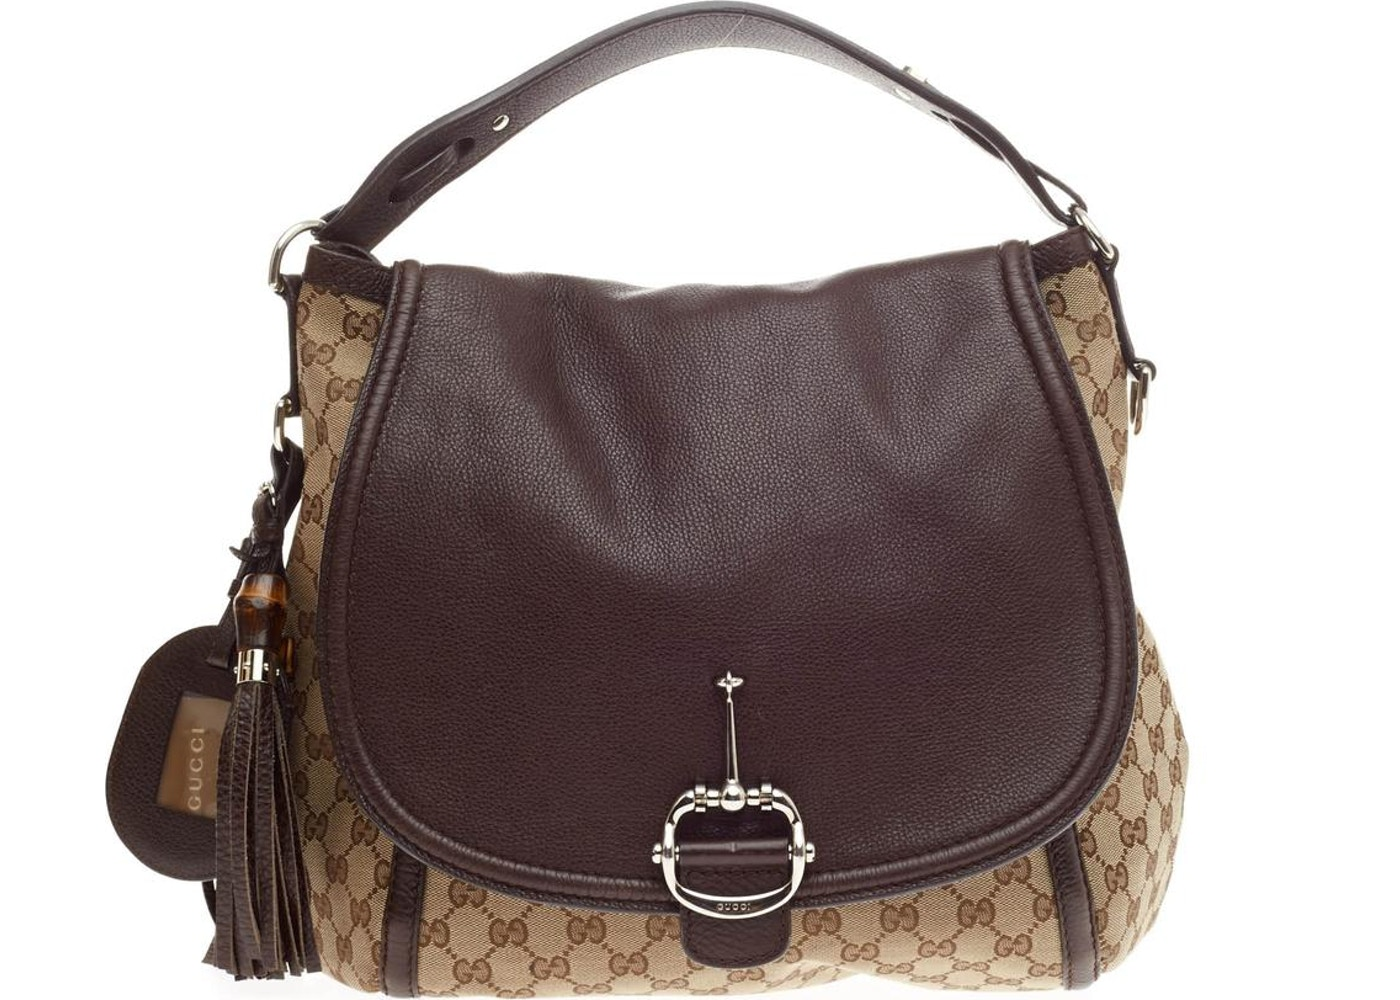 97100d3f74218f Gucci Techno Horsebit Hobo Large Brown. Large Brown